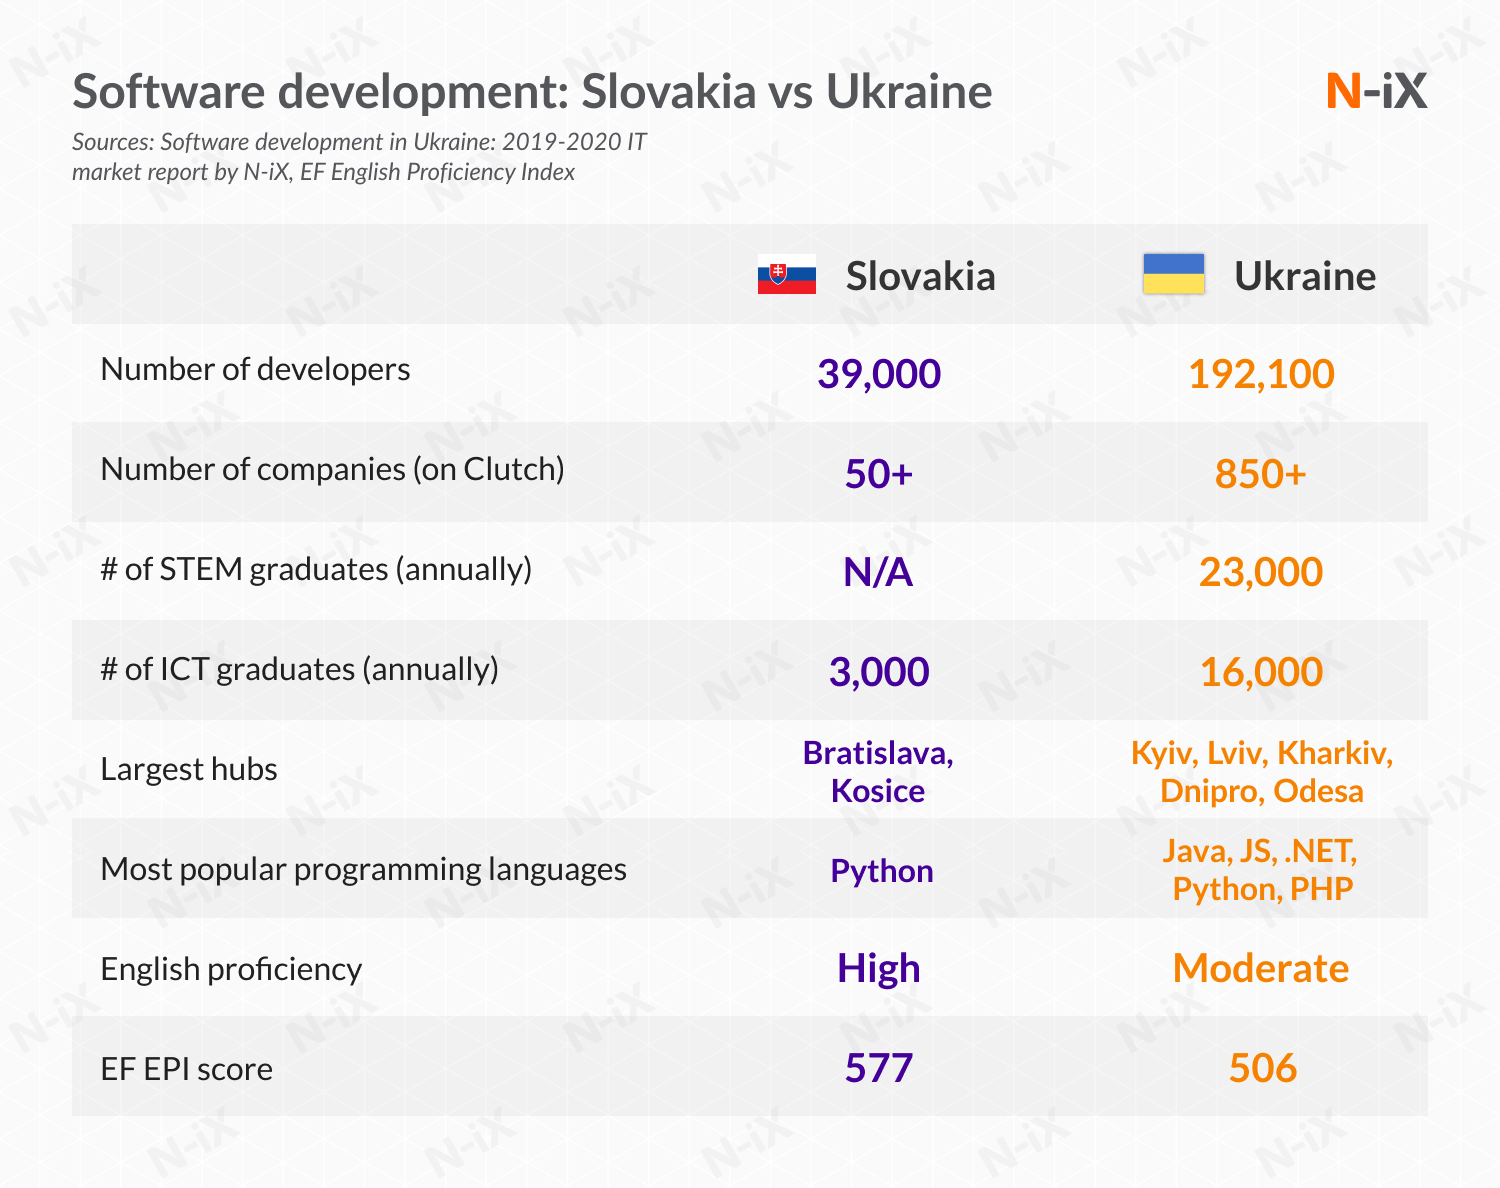 software development to Slovakia vs Ukraine